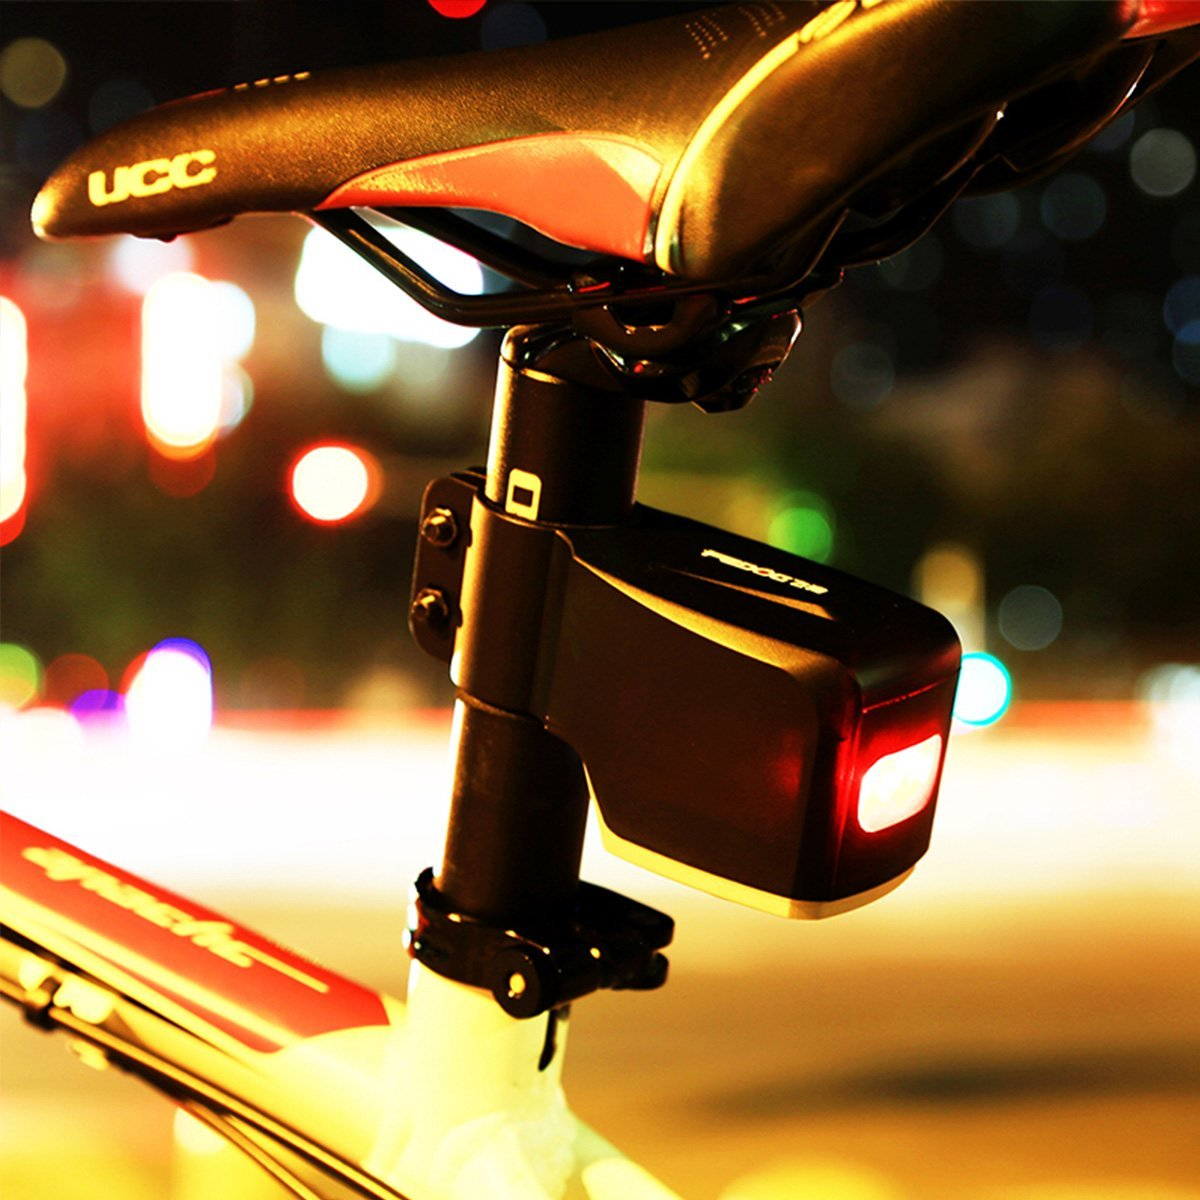 Bike Theft Alarm With Remote Singapore Bicycle Rear Light